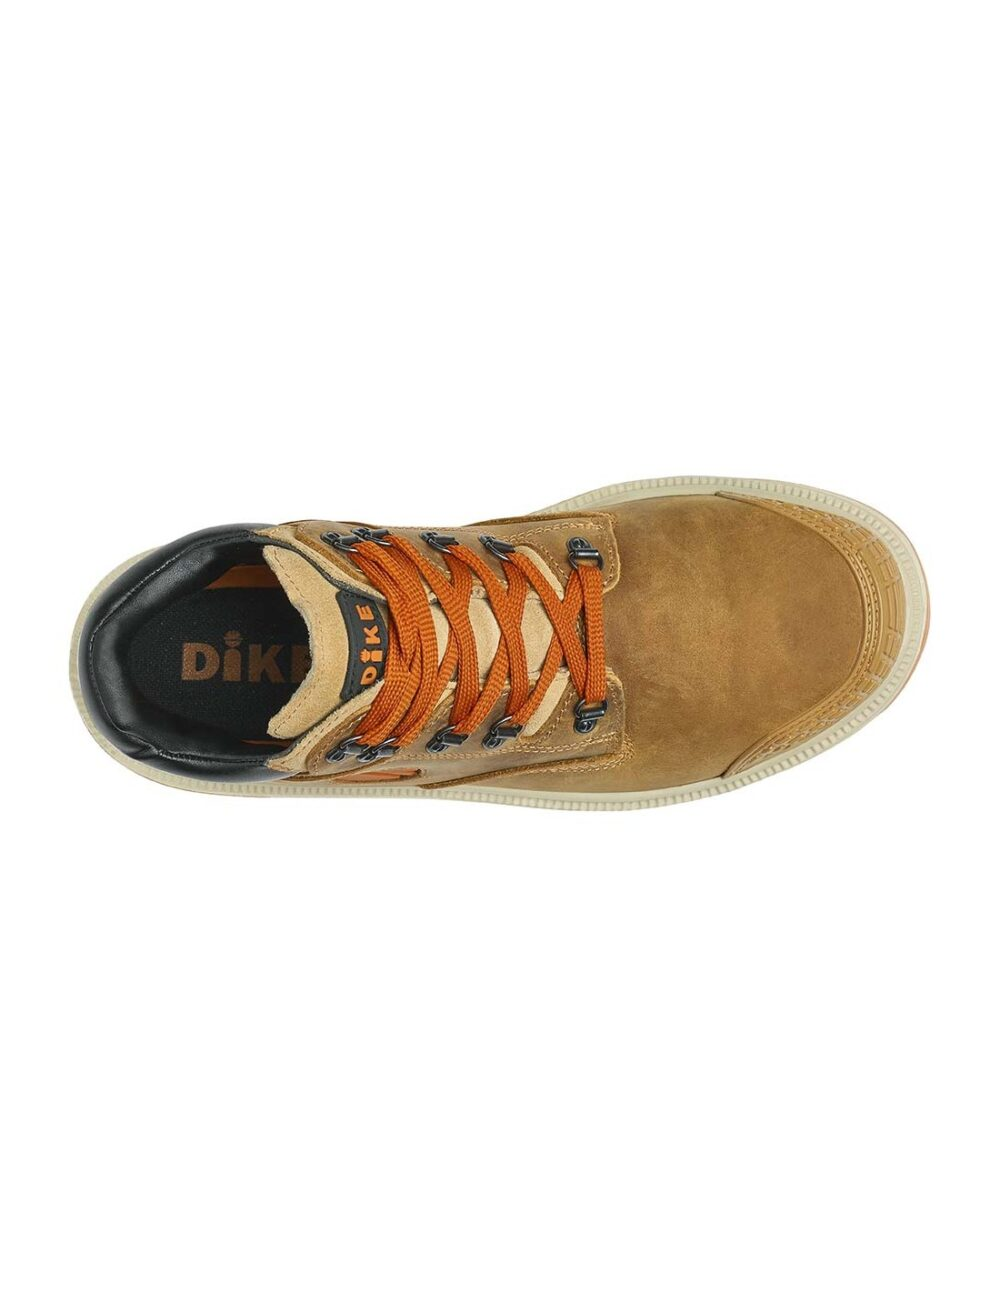 Brown digger safety boot by dike